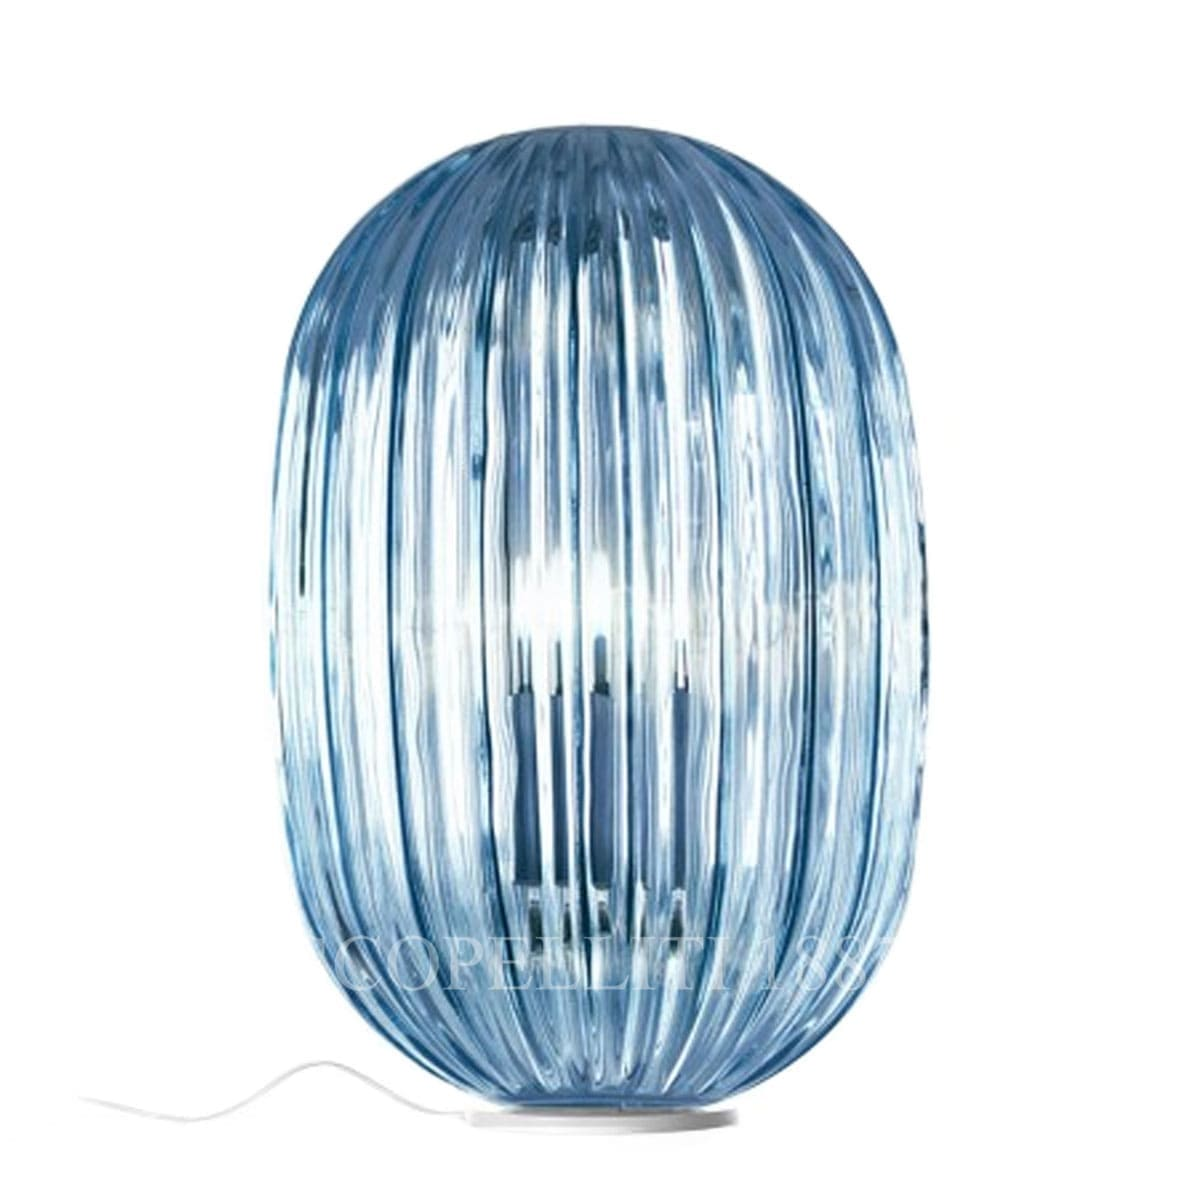 foscarini italian lighting table lamp plass media light blue